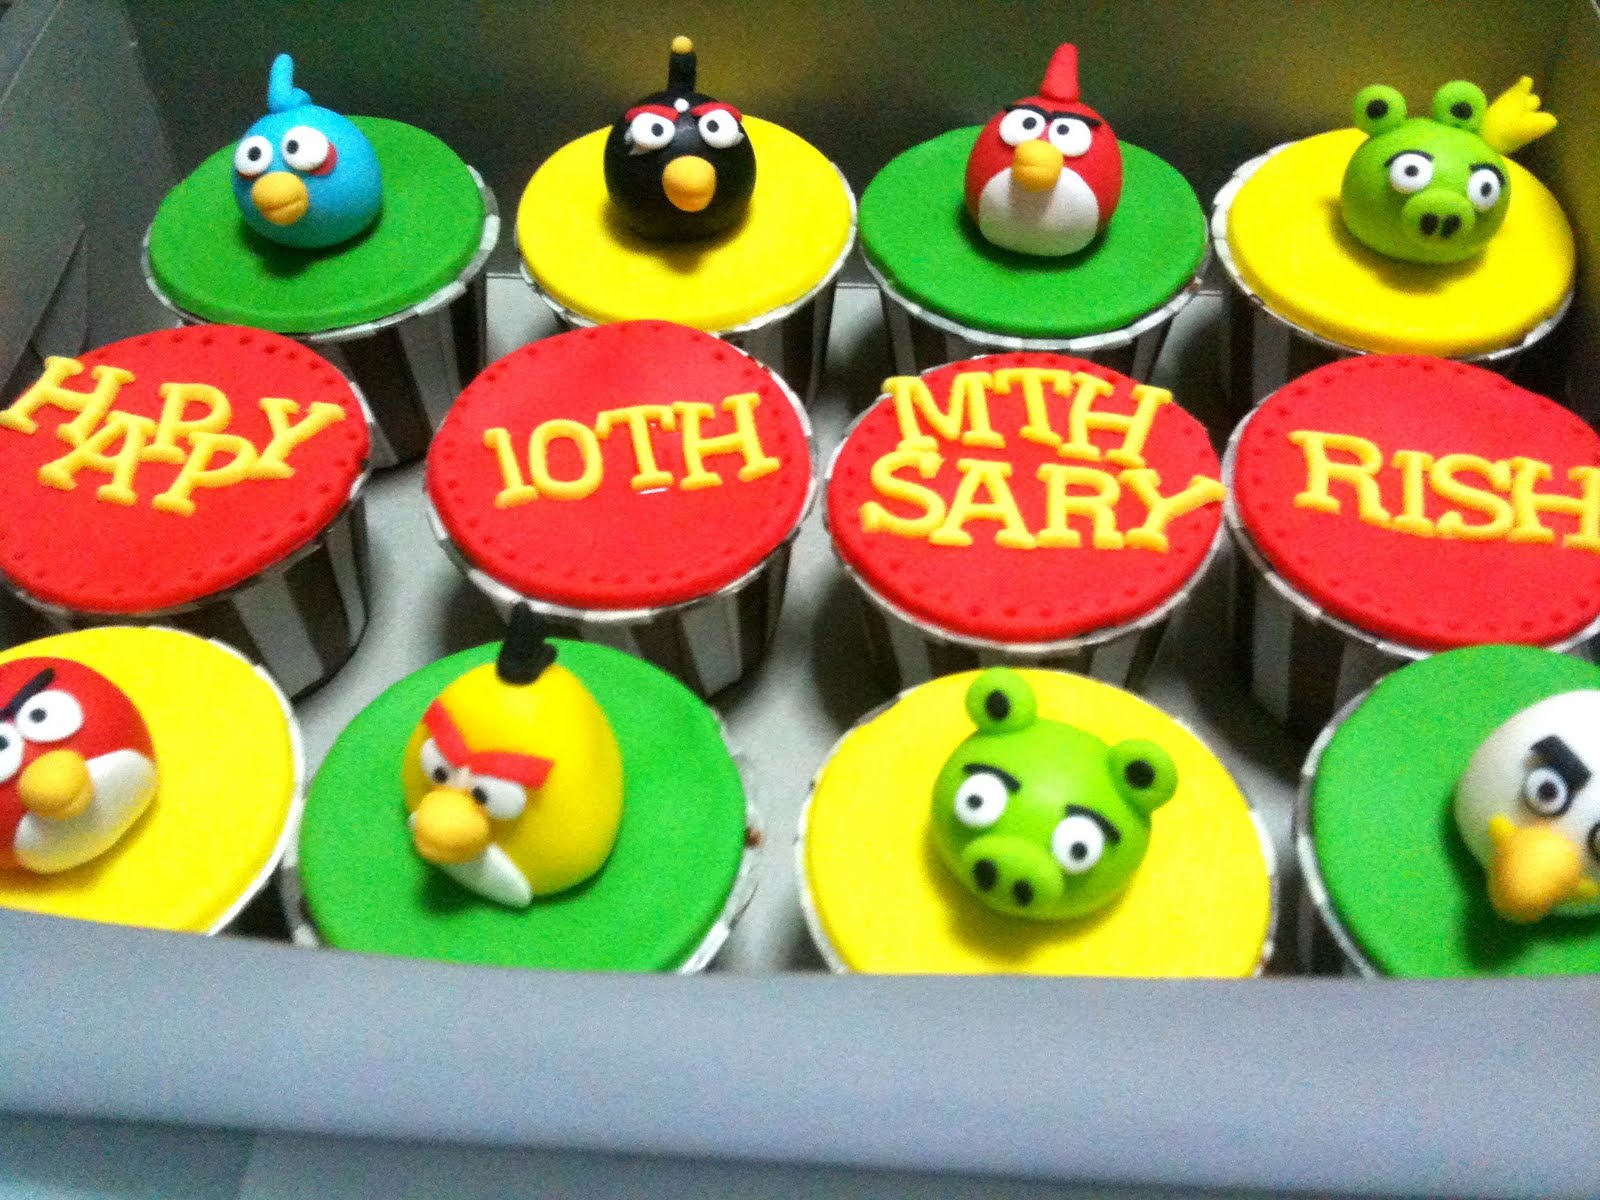 Cake Design For Monthsary : Oven Creations: Happy 10th Monthsary Rish